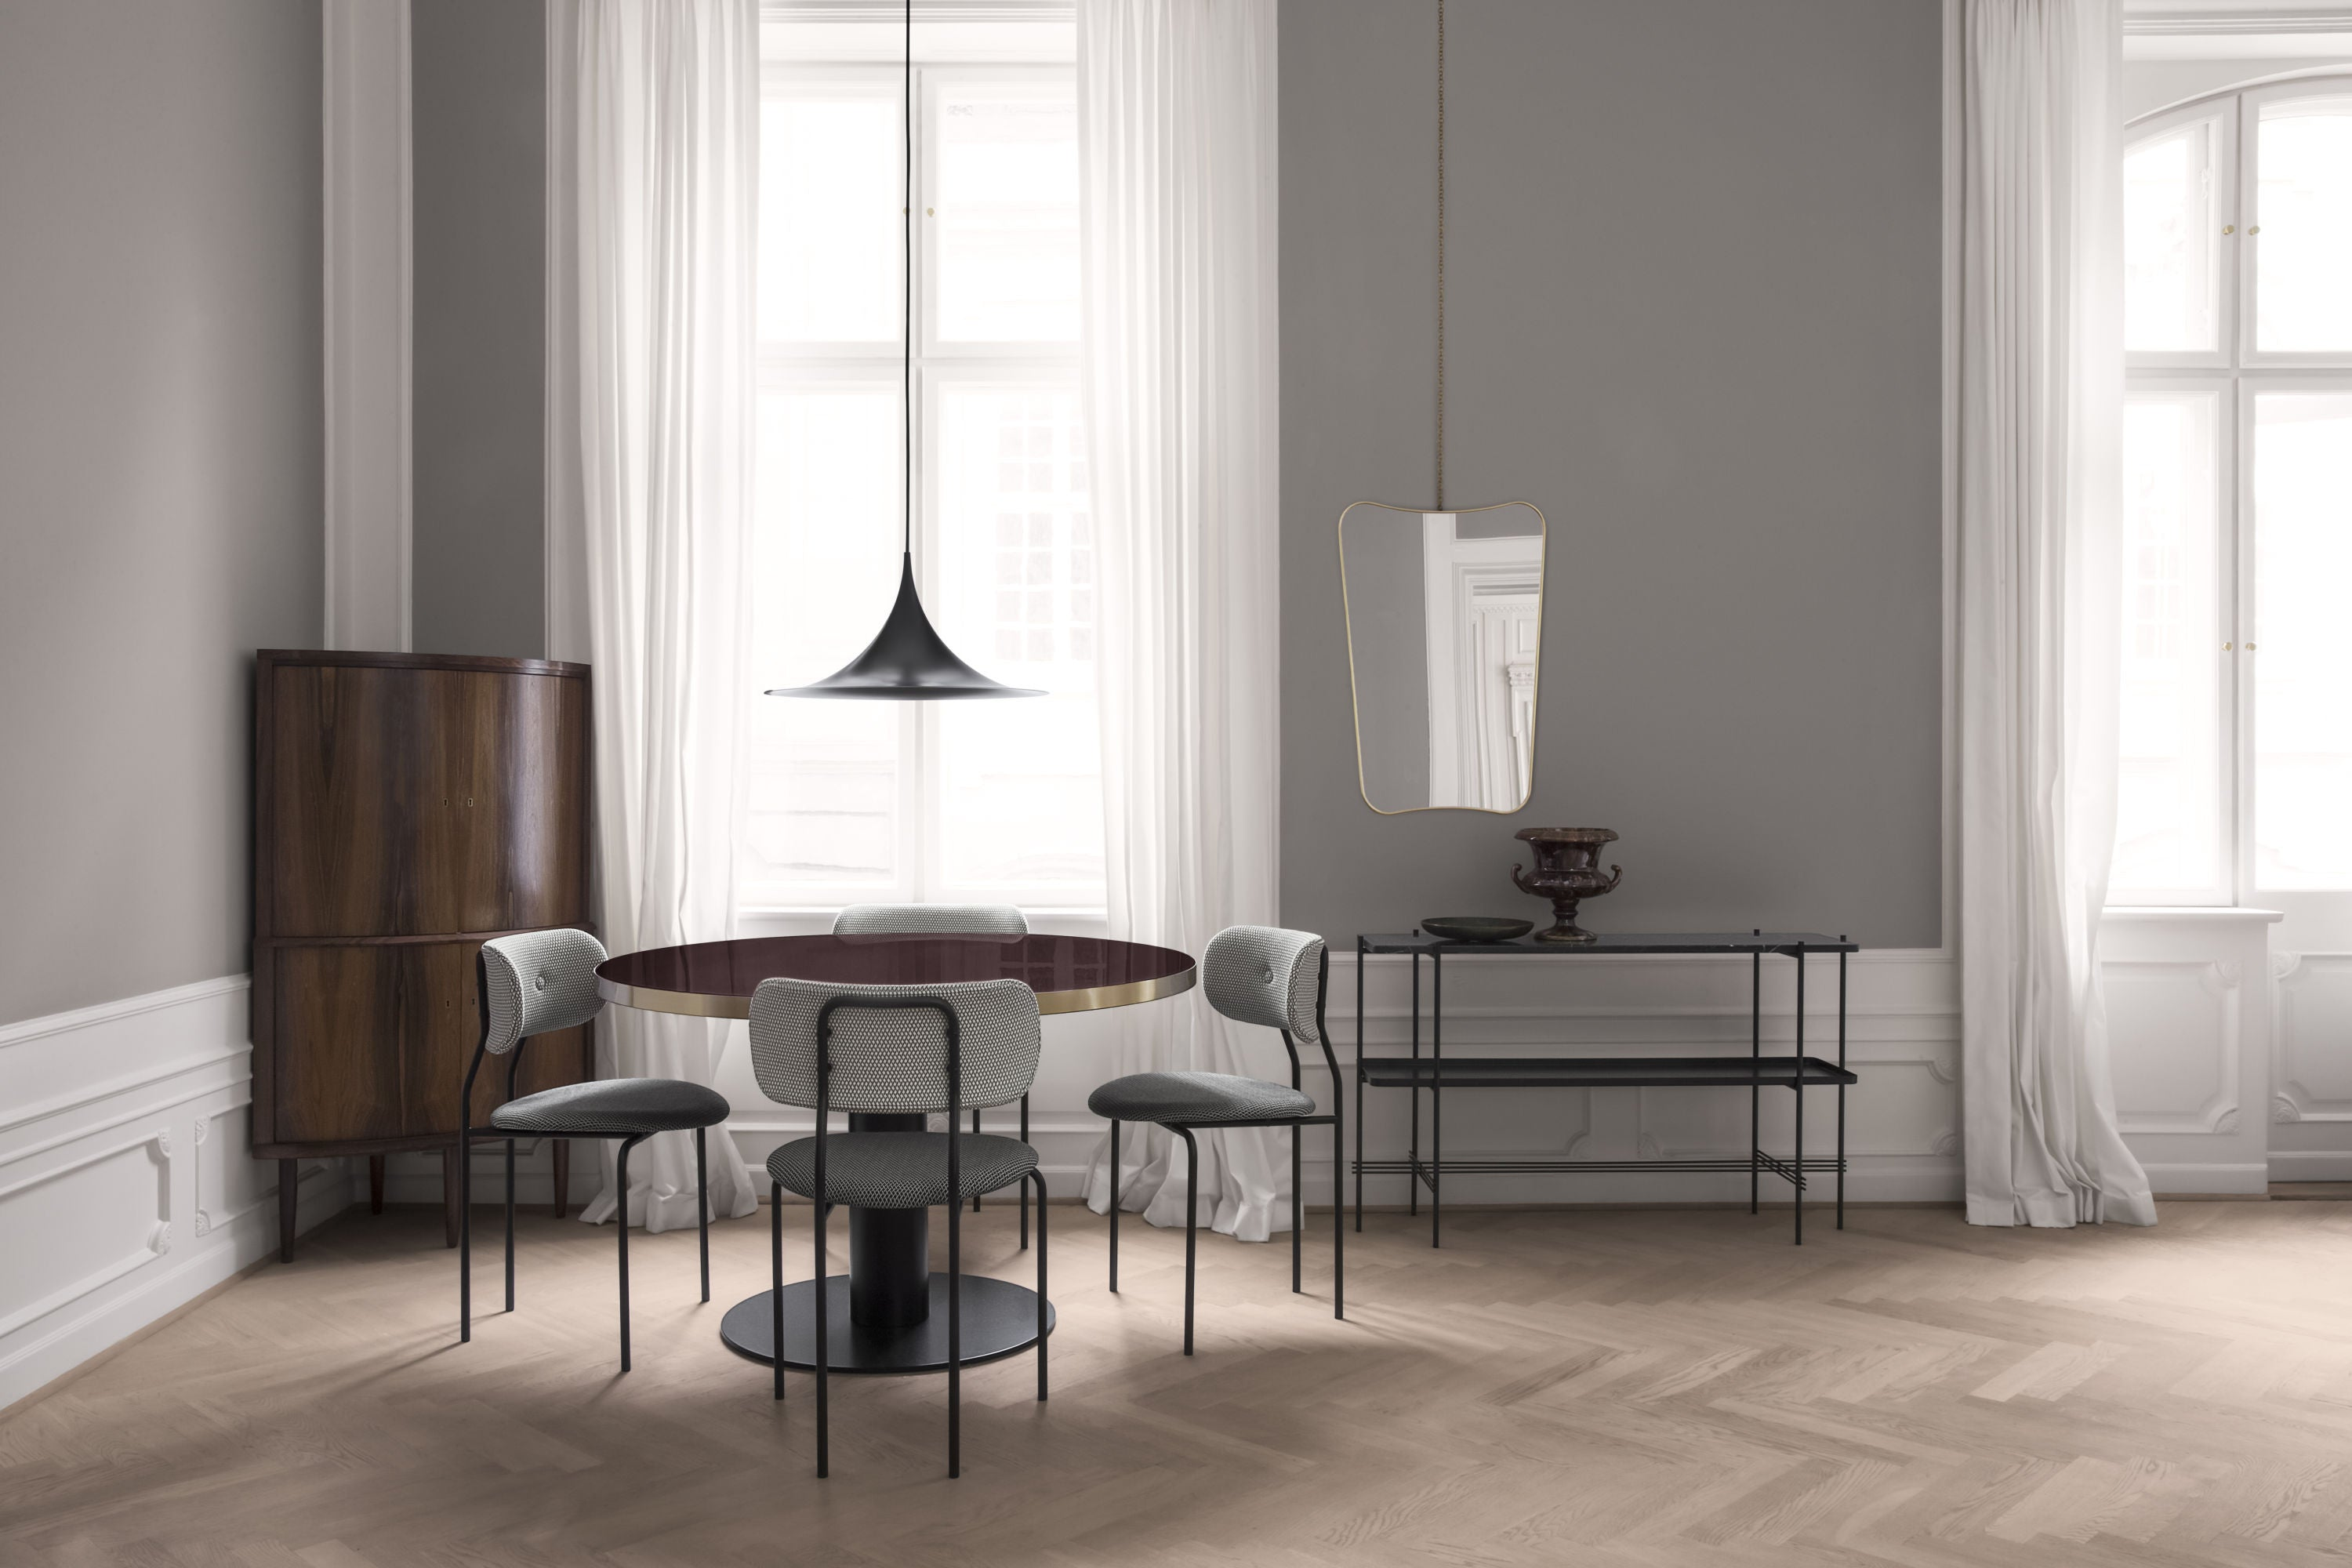 GUBI 2.0 Dining Table - Round - Dia 110 Brass Base, Glass Granite Grey Top fra GUBI